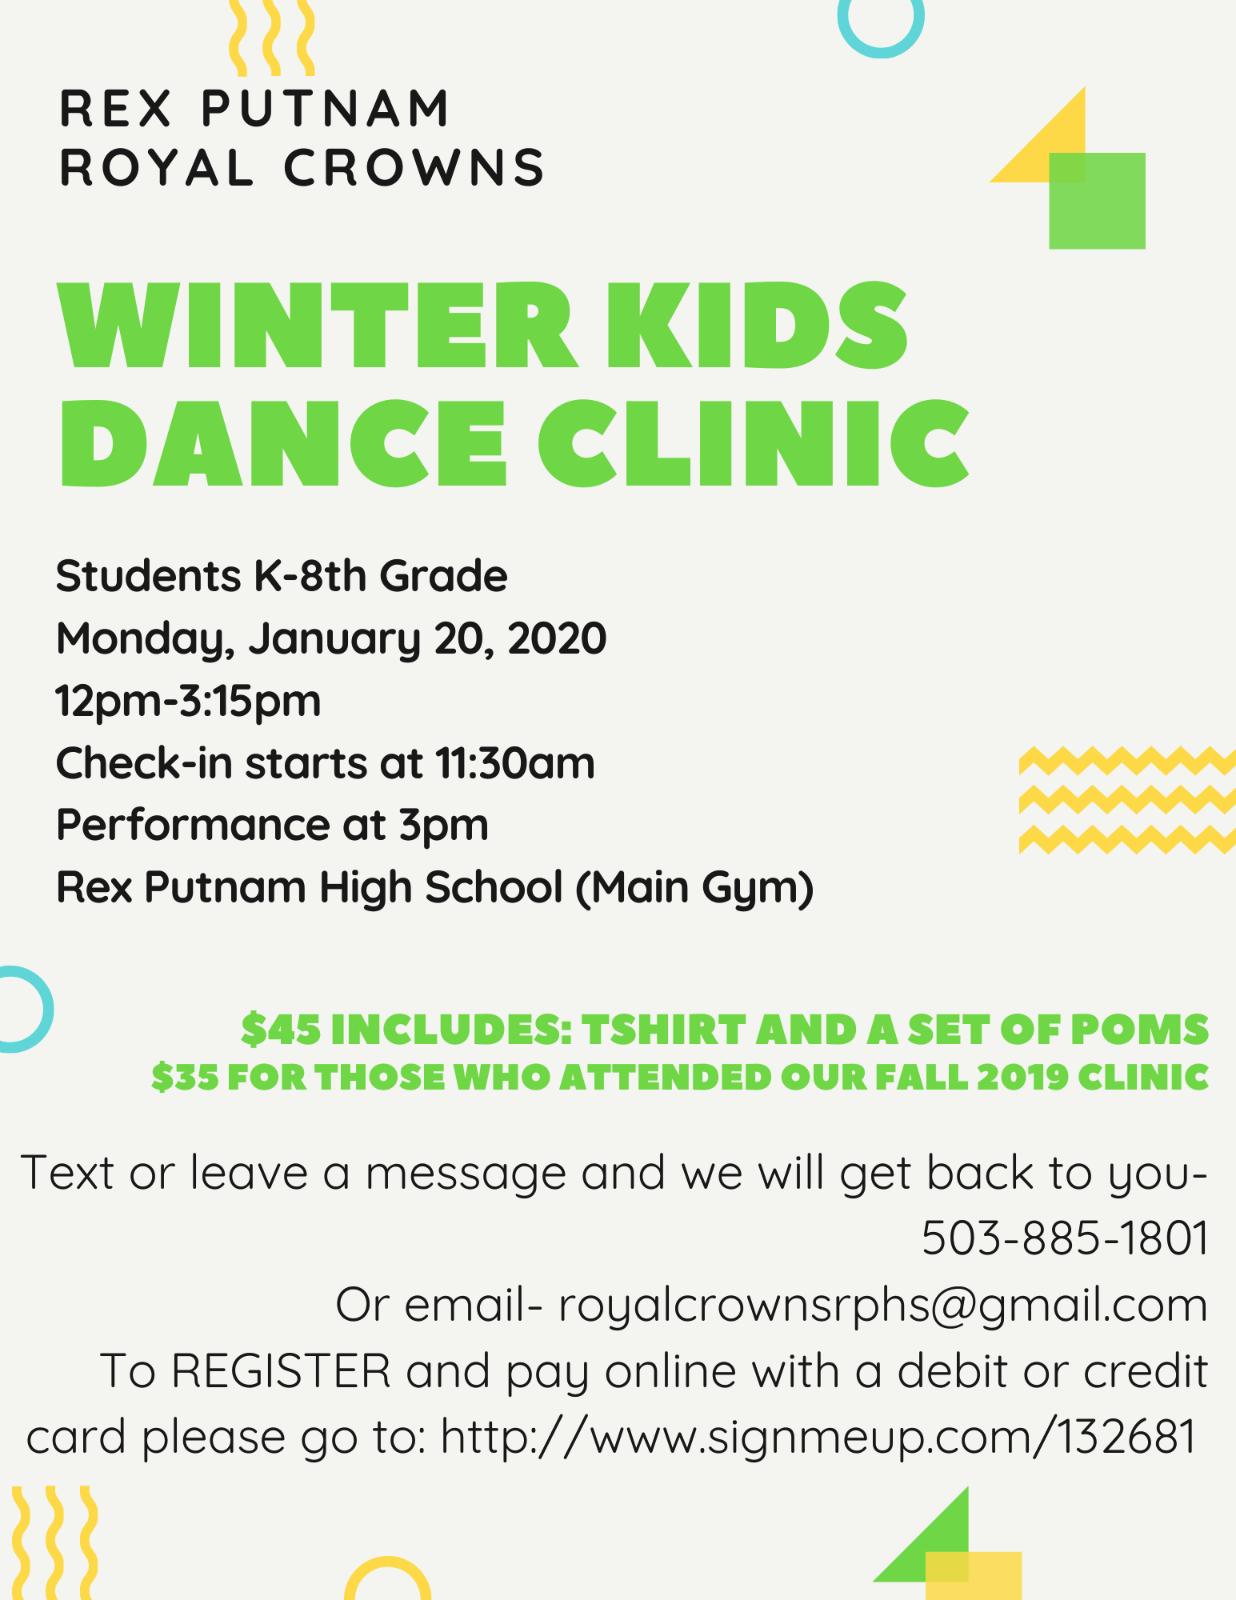 Royal Crowns Winter Kids Dance Clinic